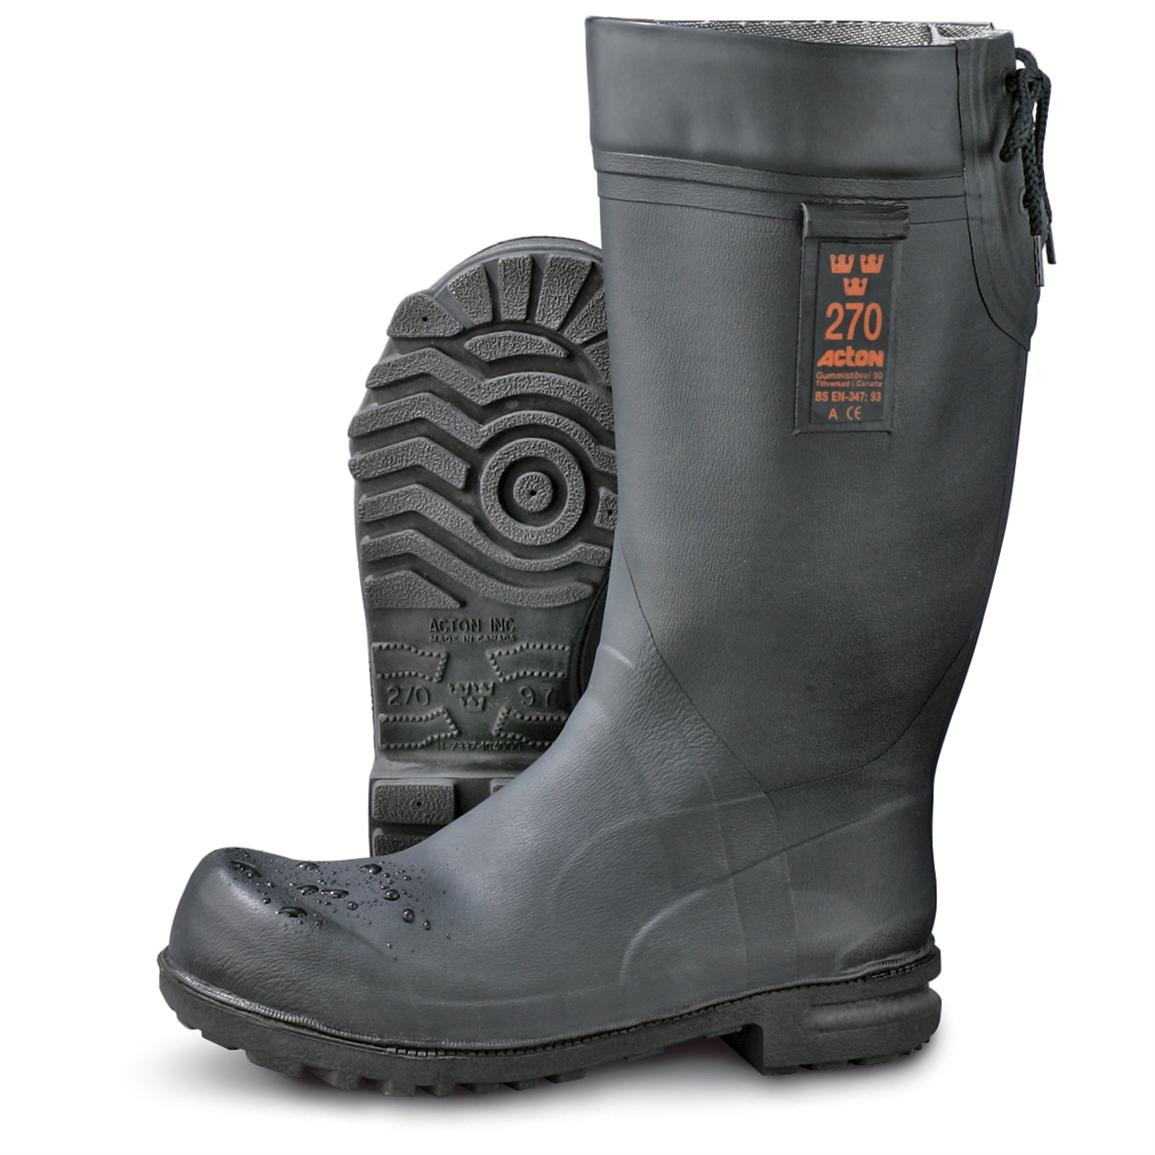 Men's New Swedish Military Rubber Boots, Black - 157736, Winter ...